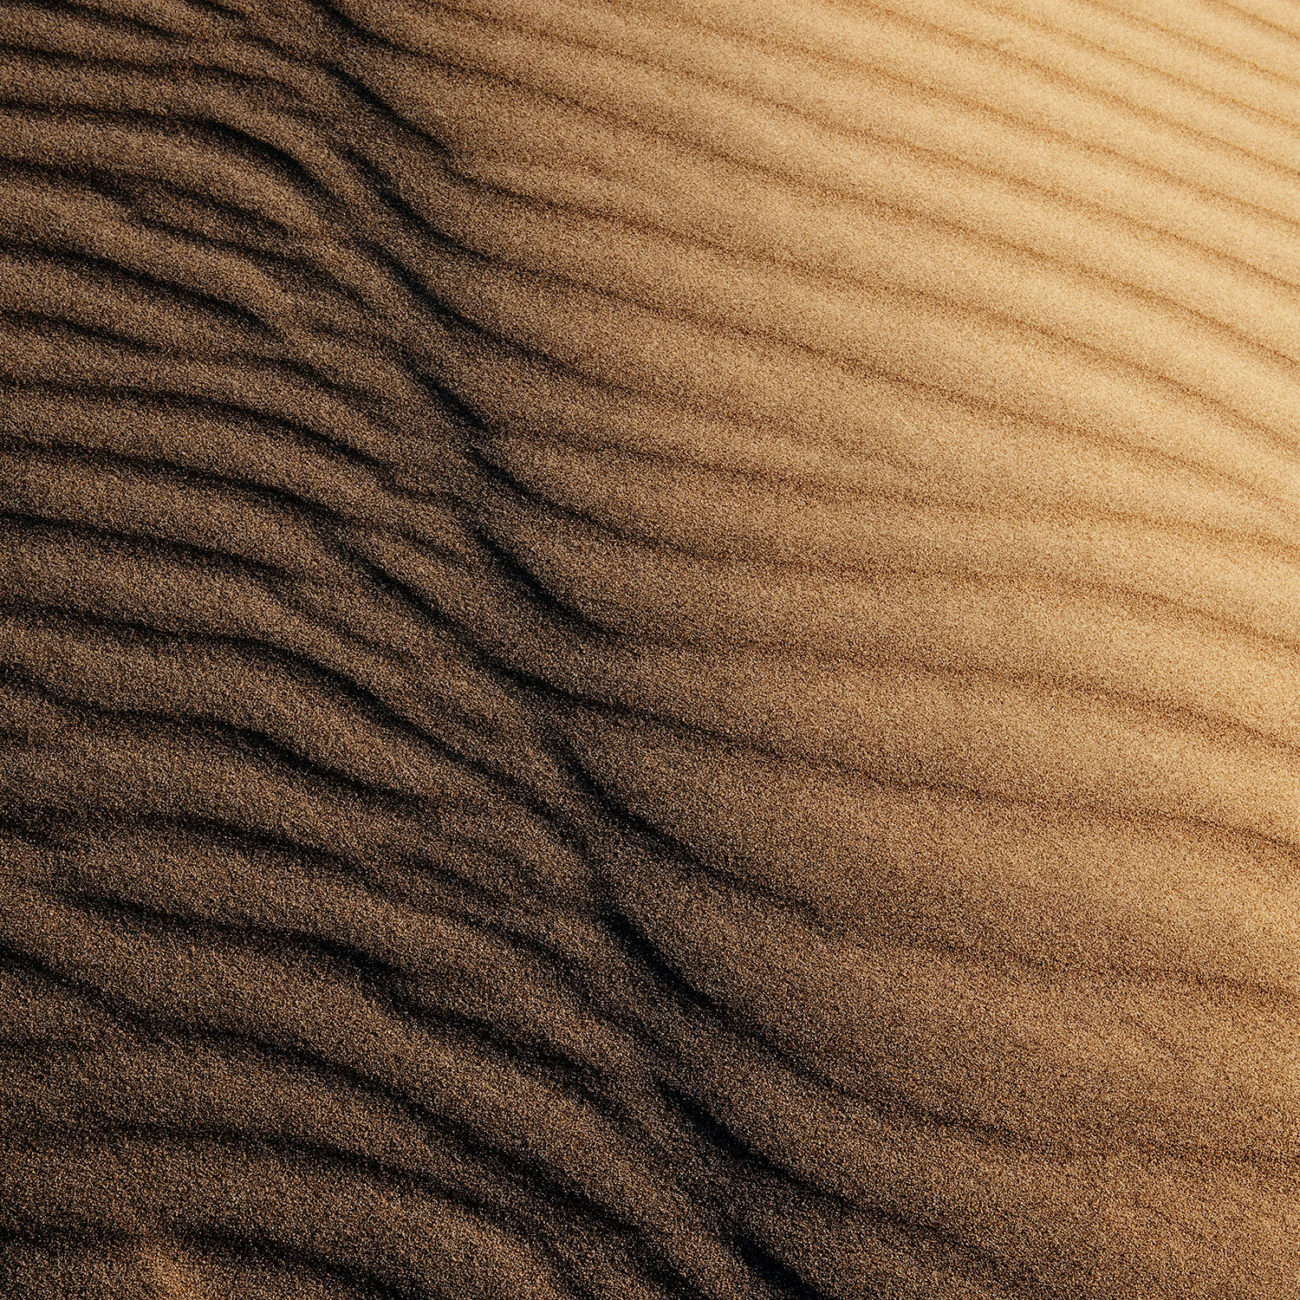 Dune wind pattern, Death Valley, 2009